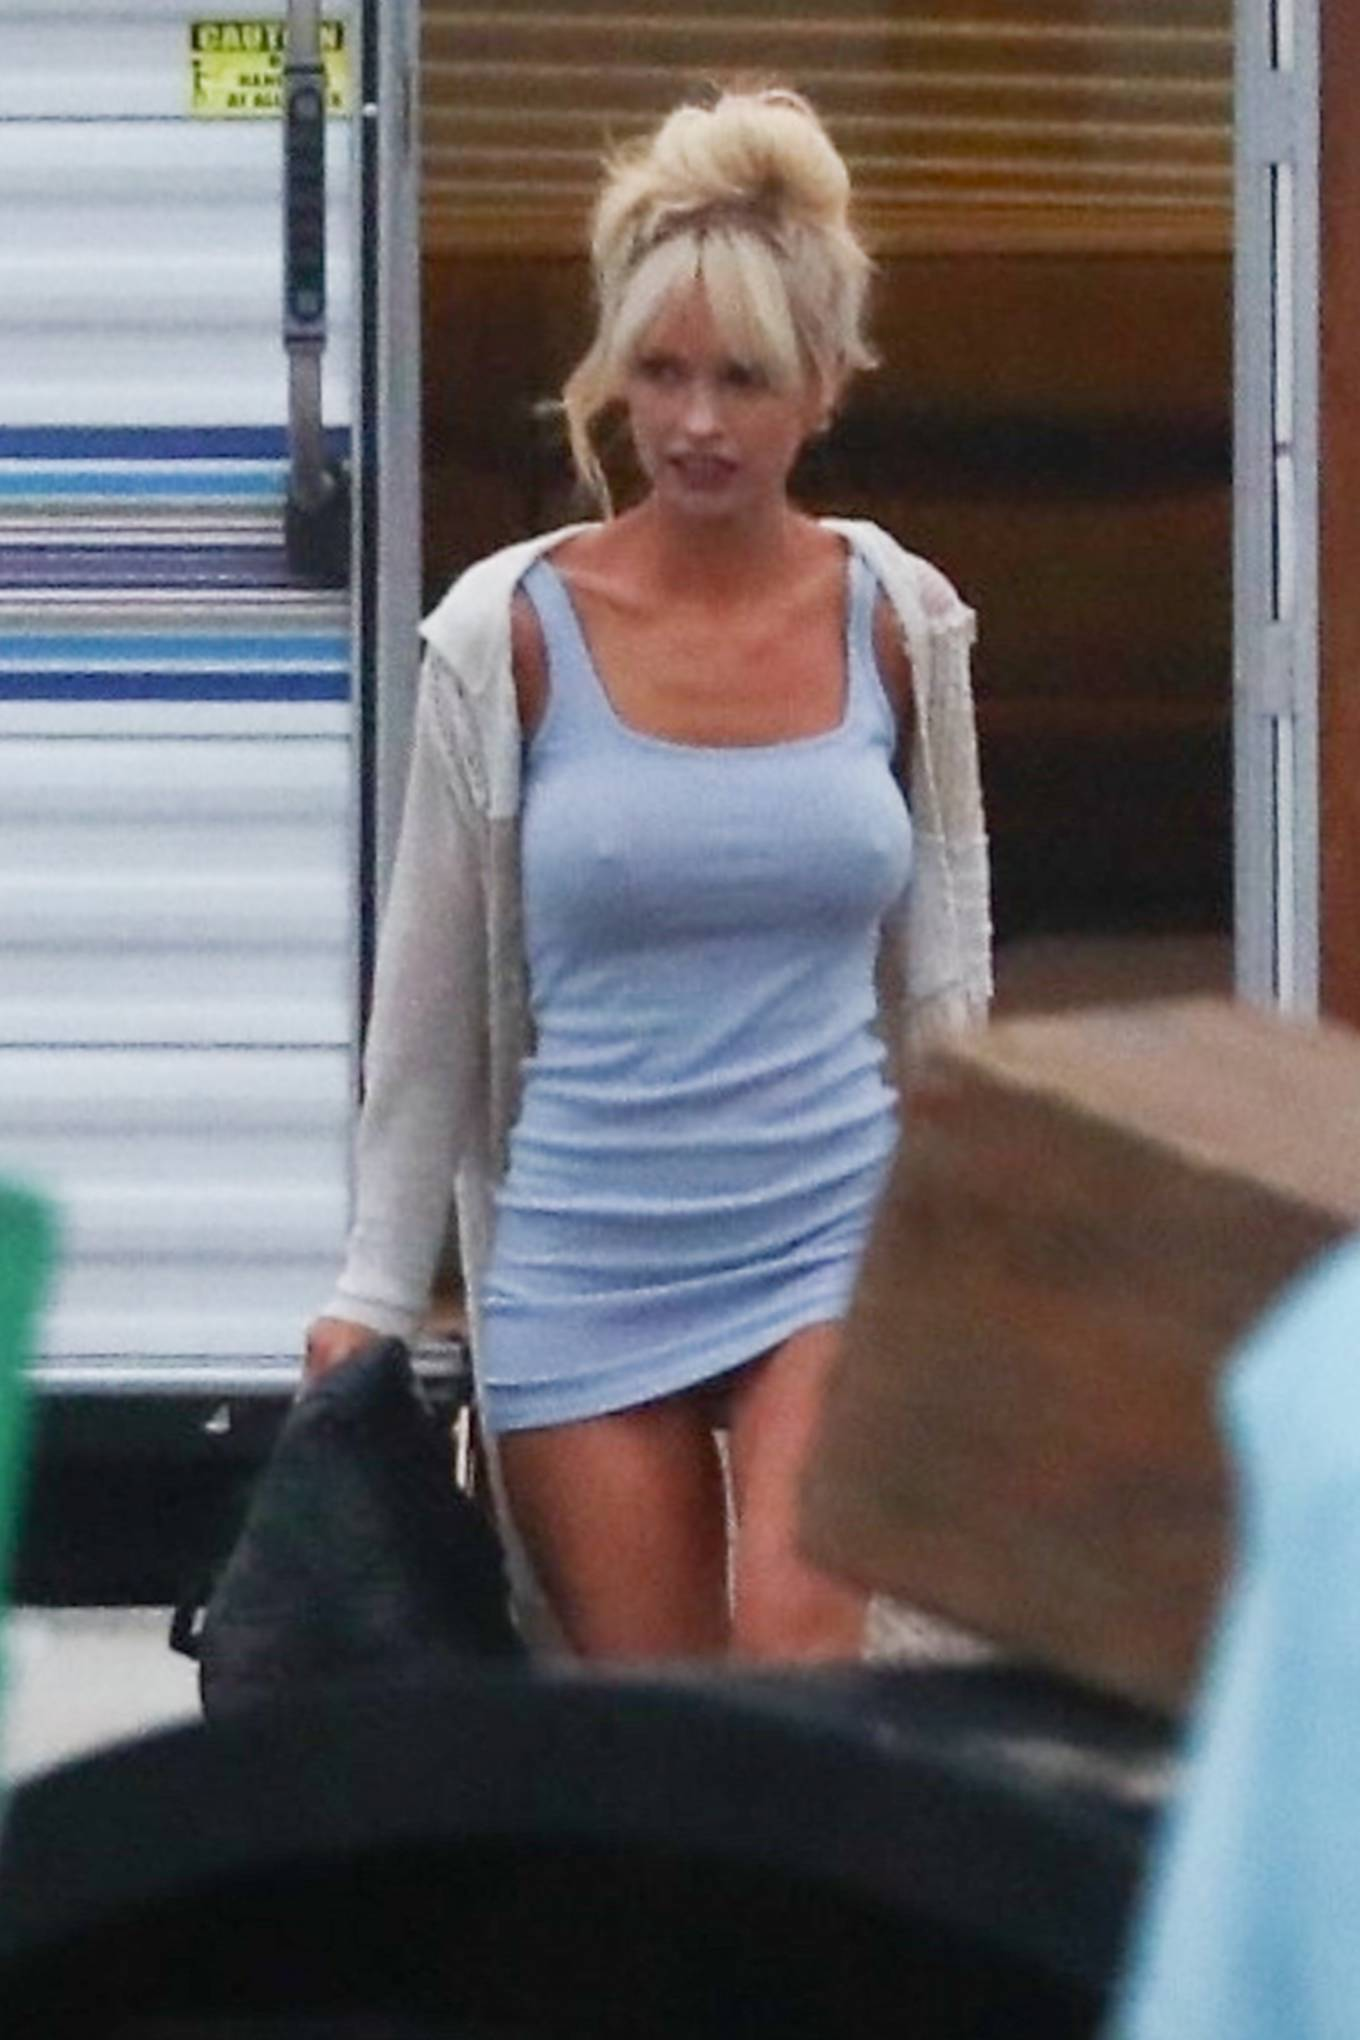 Lily James - As Pamela Anderson on filming a scene for 'Pam and Tommy' in Malibu